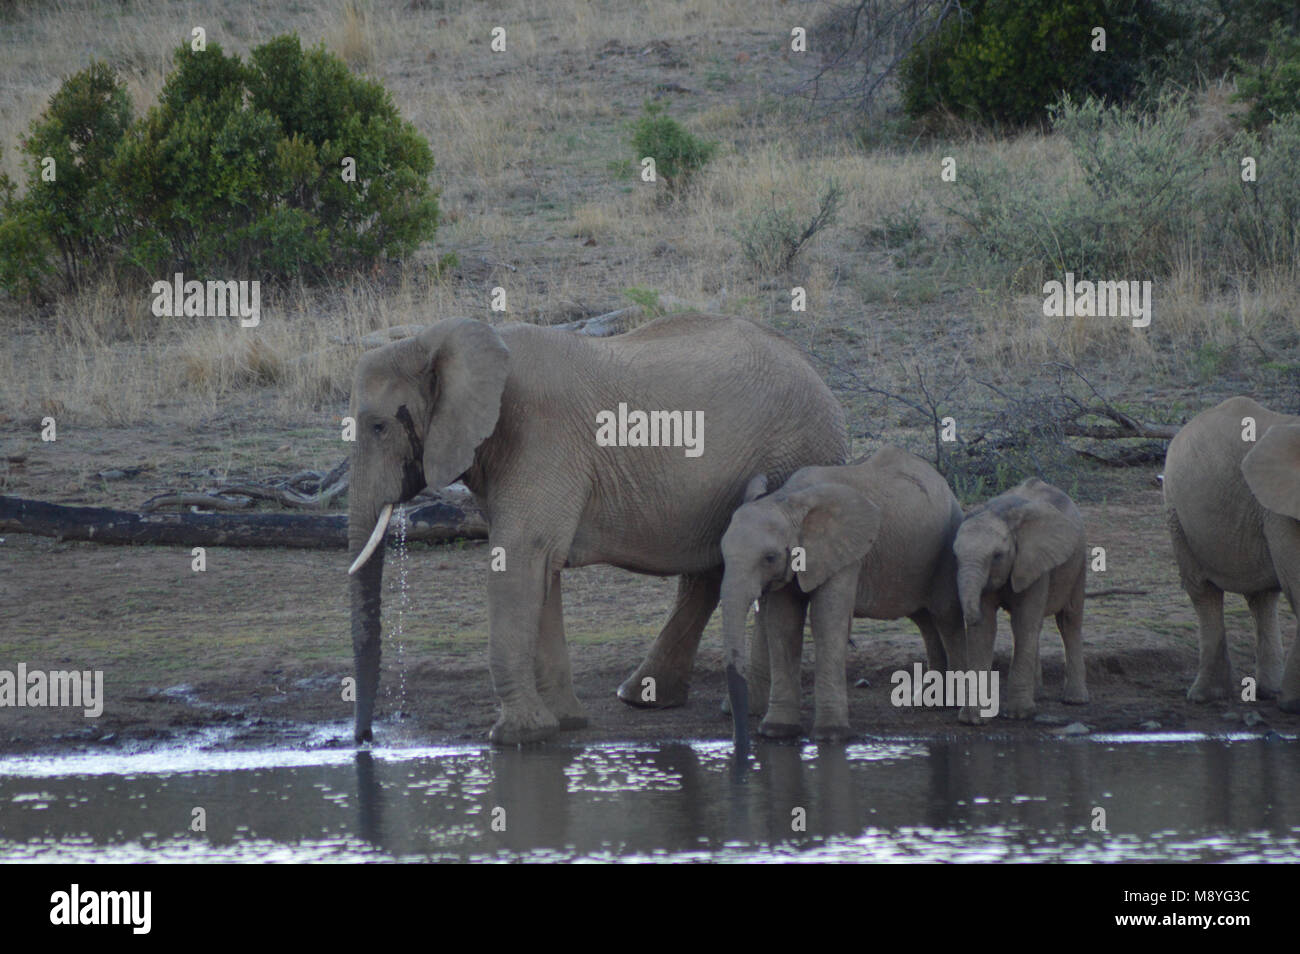 the fate of elephants at pilanesberg national park Assessing translocation outcome: comparing behavioral and physiological  translocated elephants' fate by  of white rhinoceros in pilanesberg national park,.